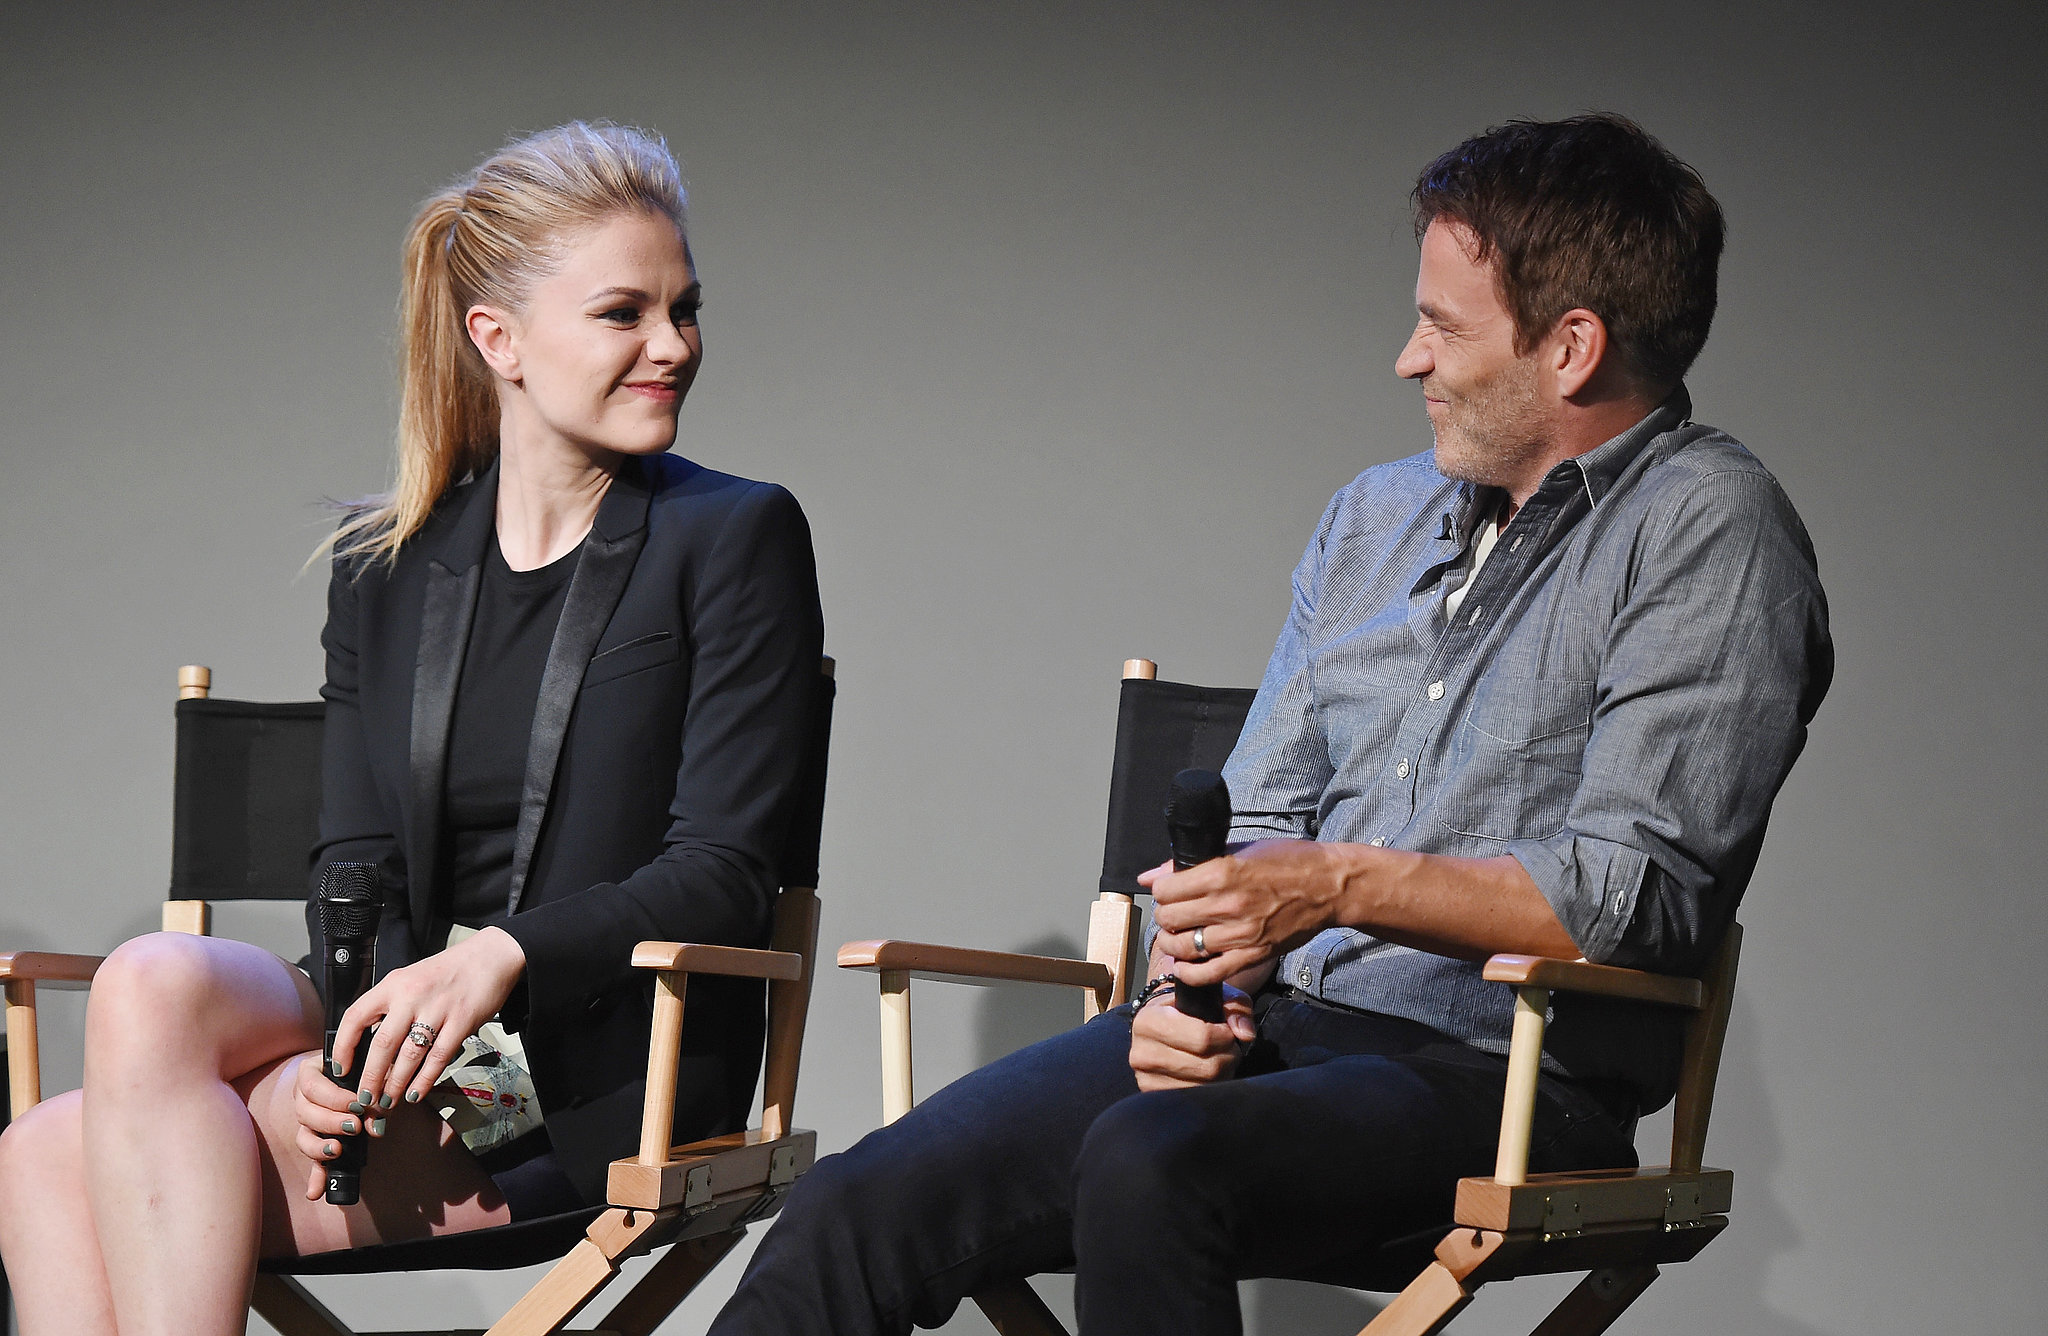 Anna Paquin and Stephen Moyer shared a sweet moment at an Apple Store Q&A on Tuesday in NYC.